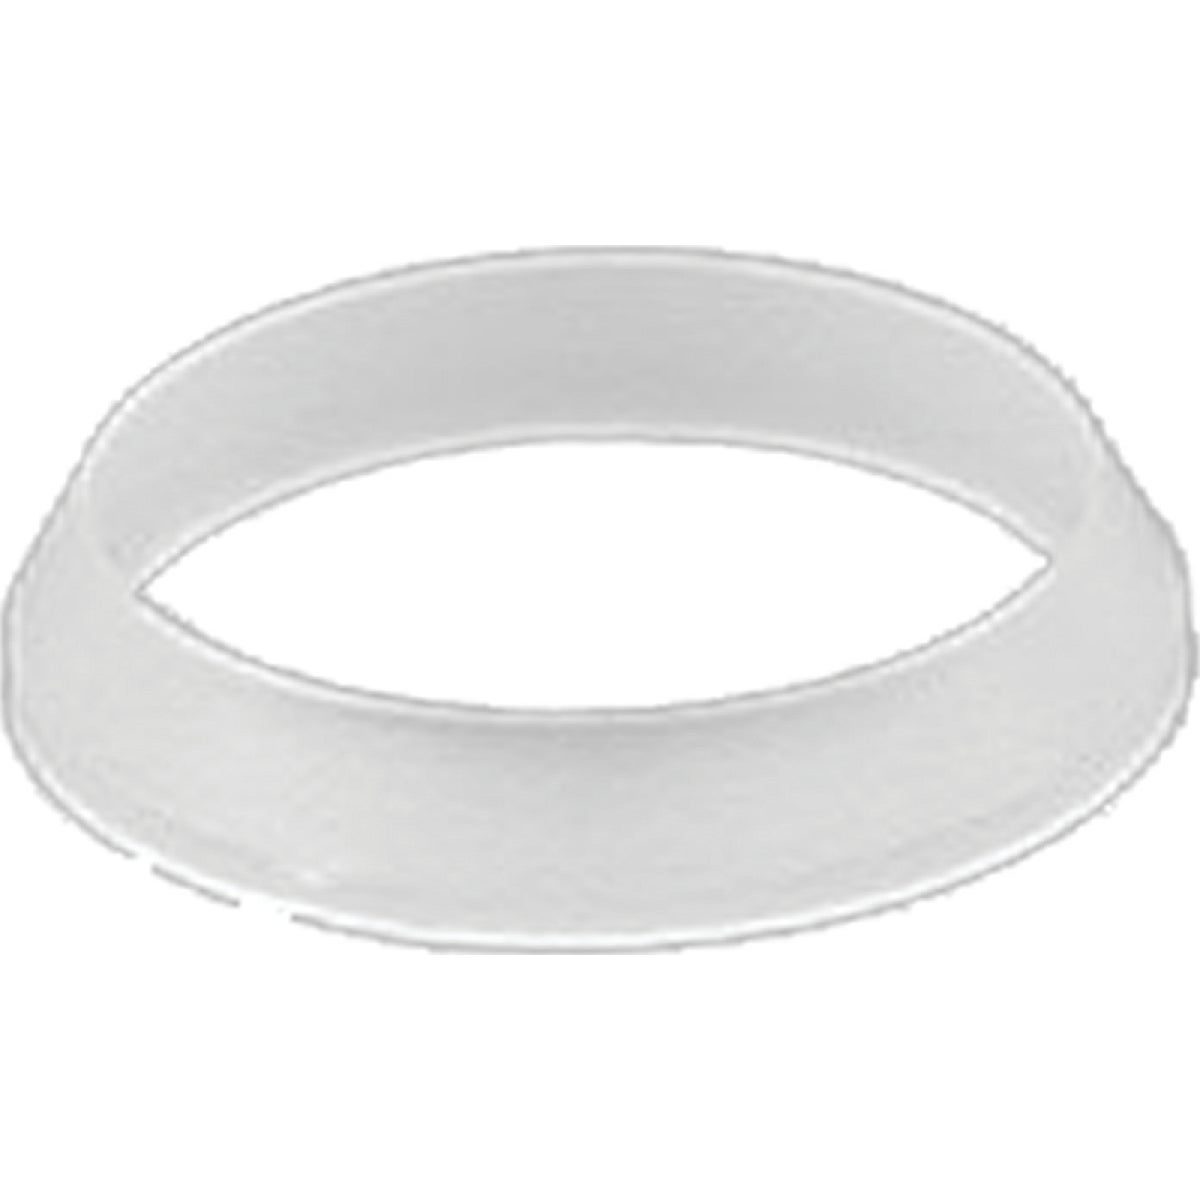 "1-1/4"" SLIP JOINT WASHER - 14804 by Genova Inc"